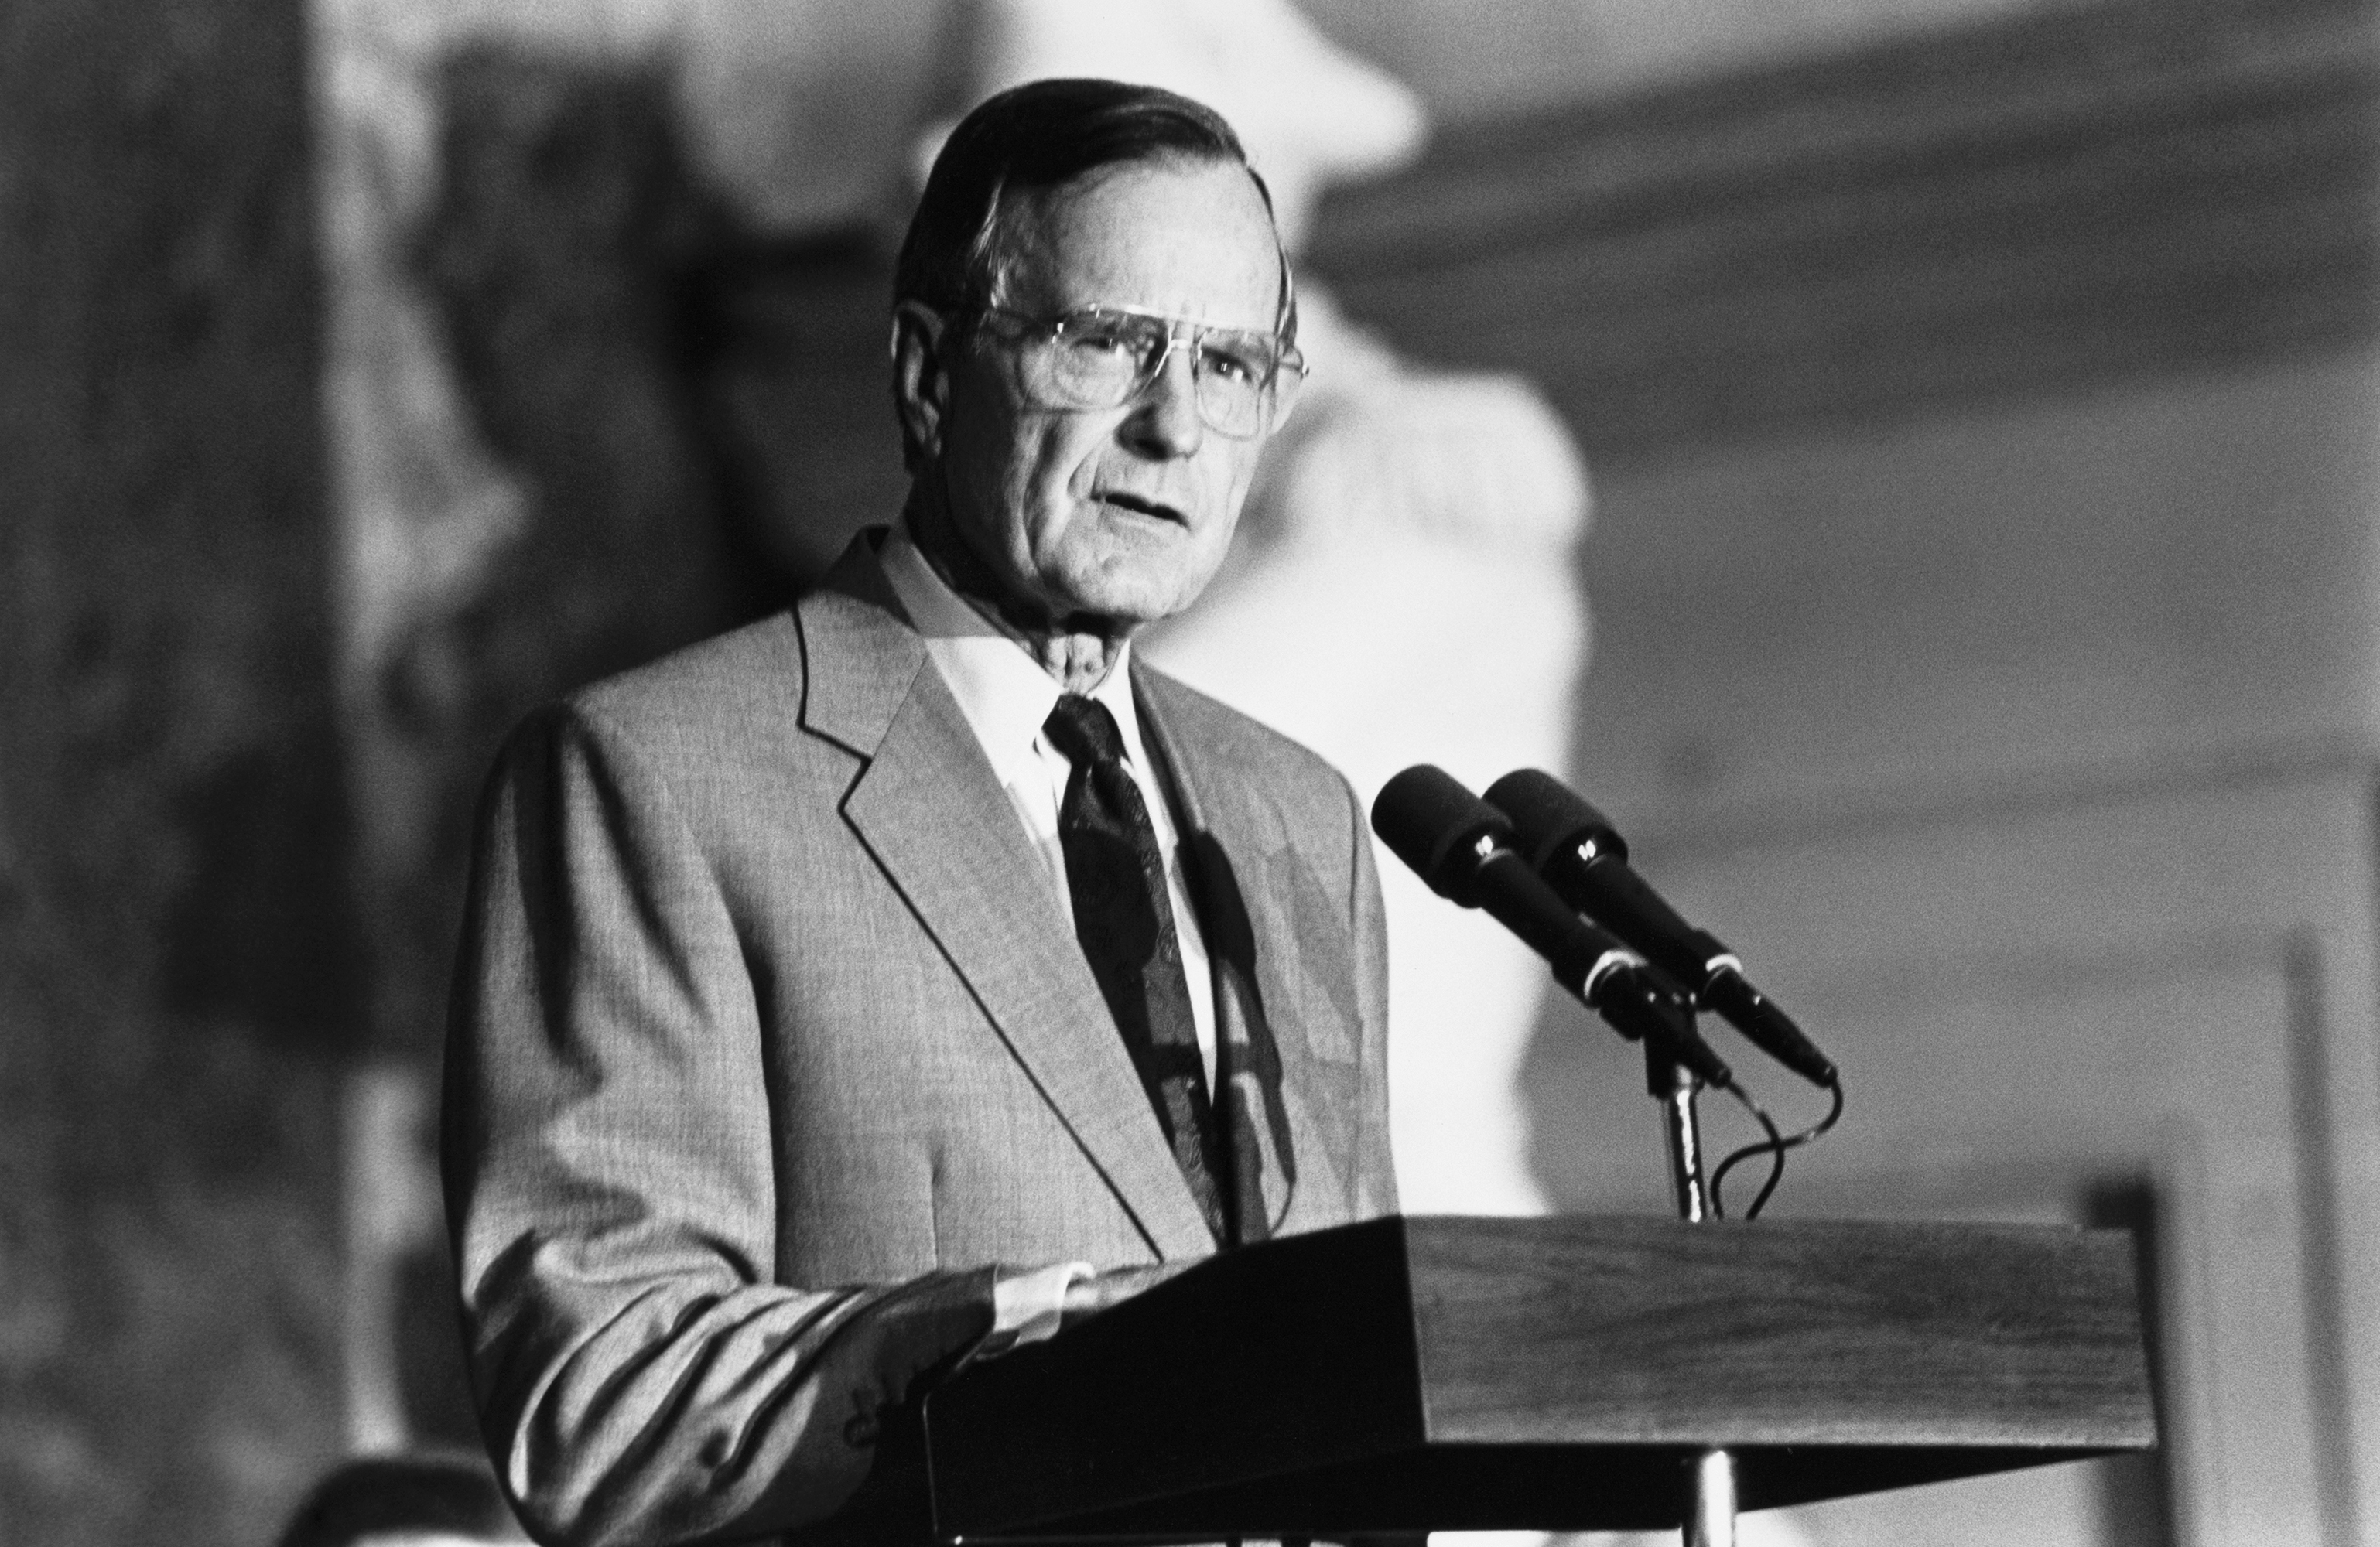 George H.W. Bush talking over microphone